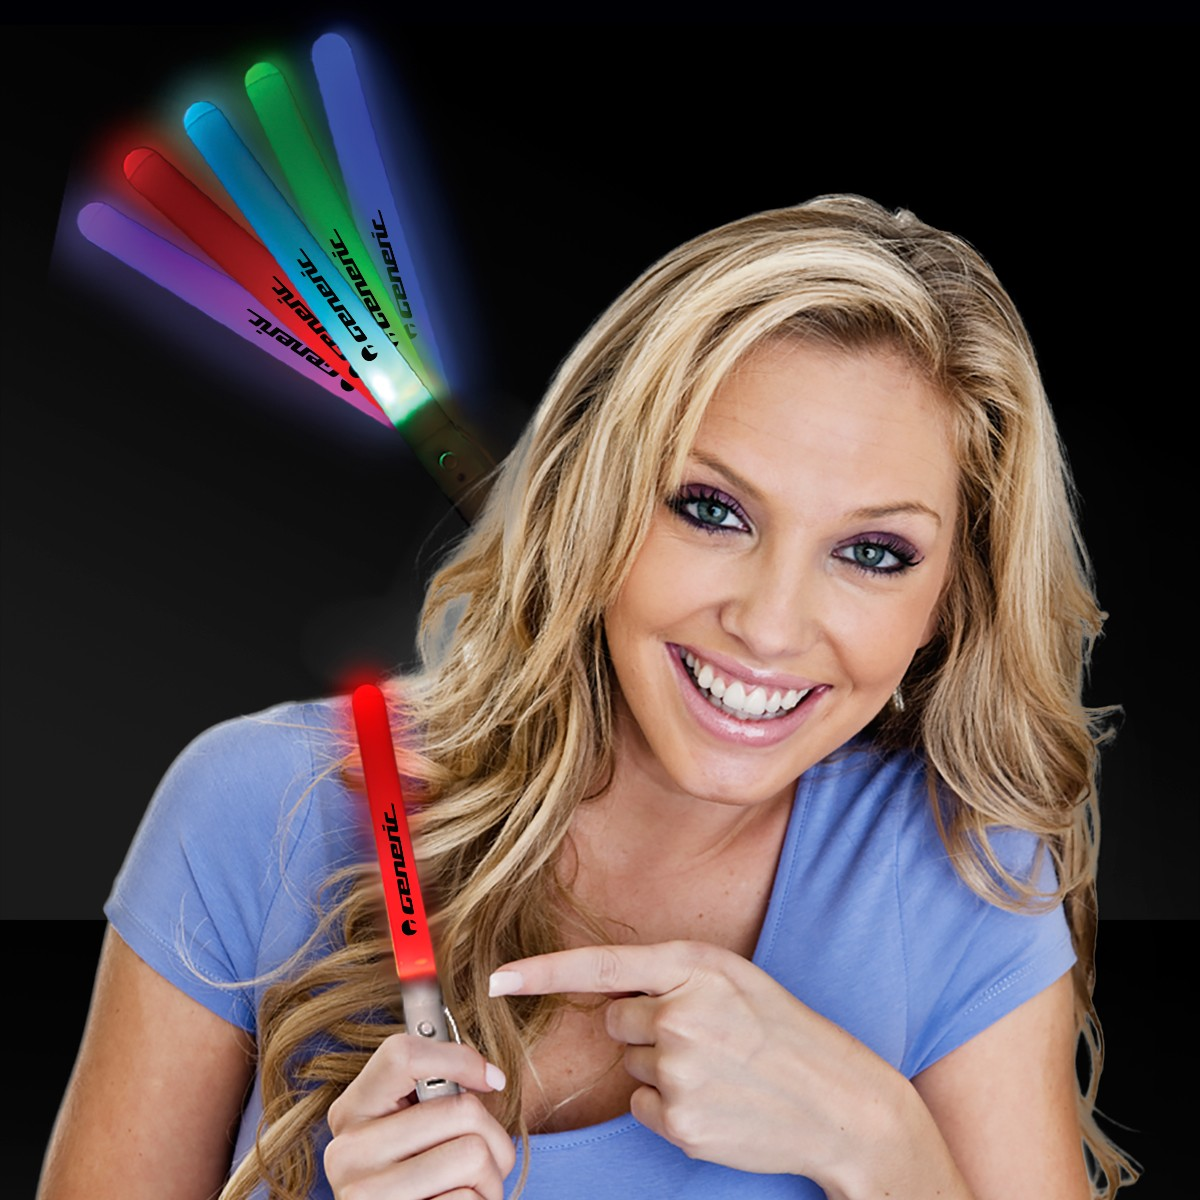 7 INCH LED LIGHT STICK WAND